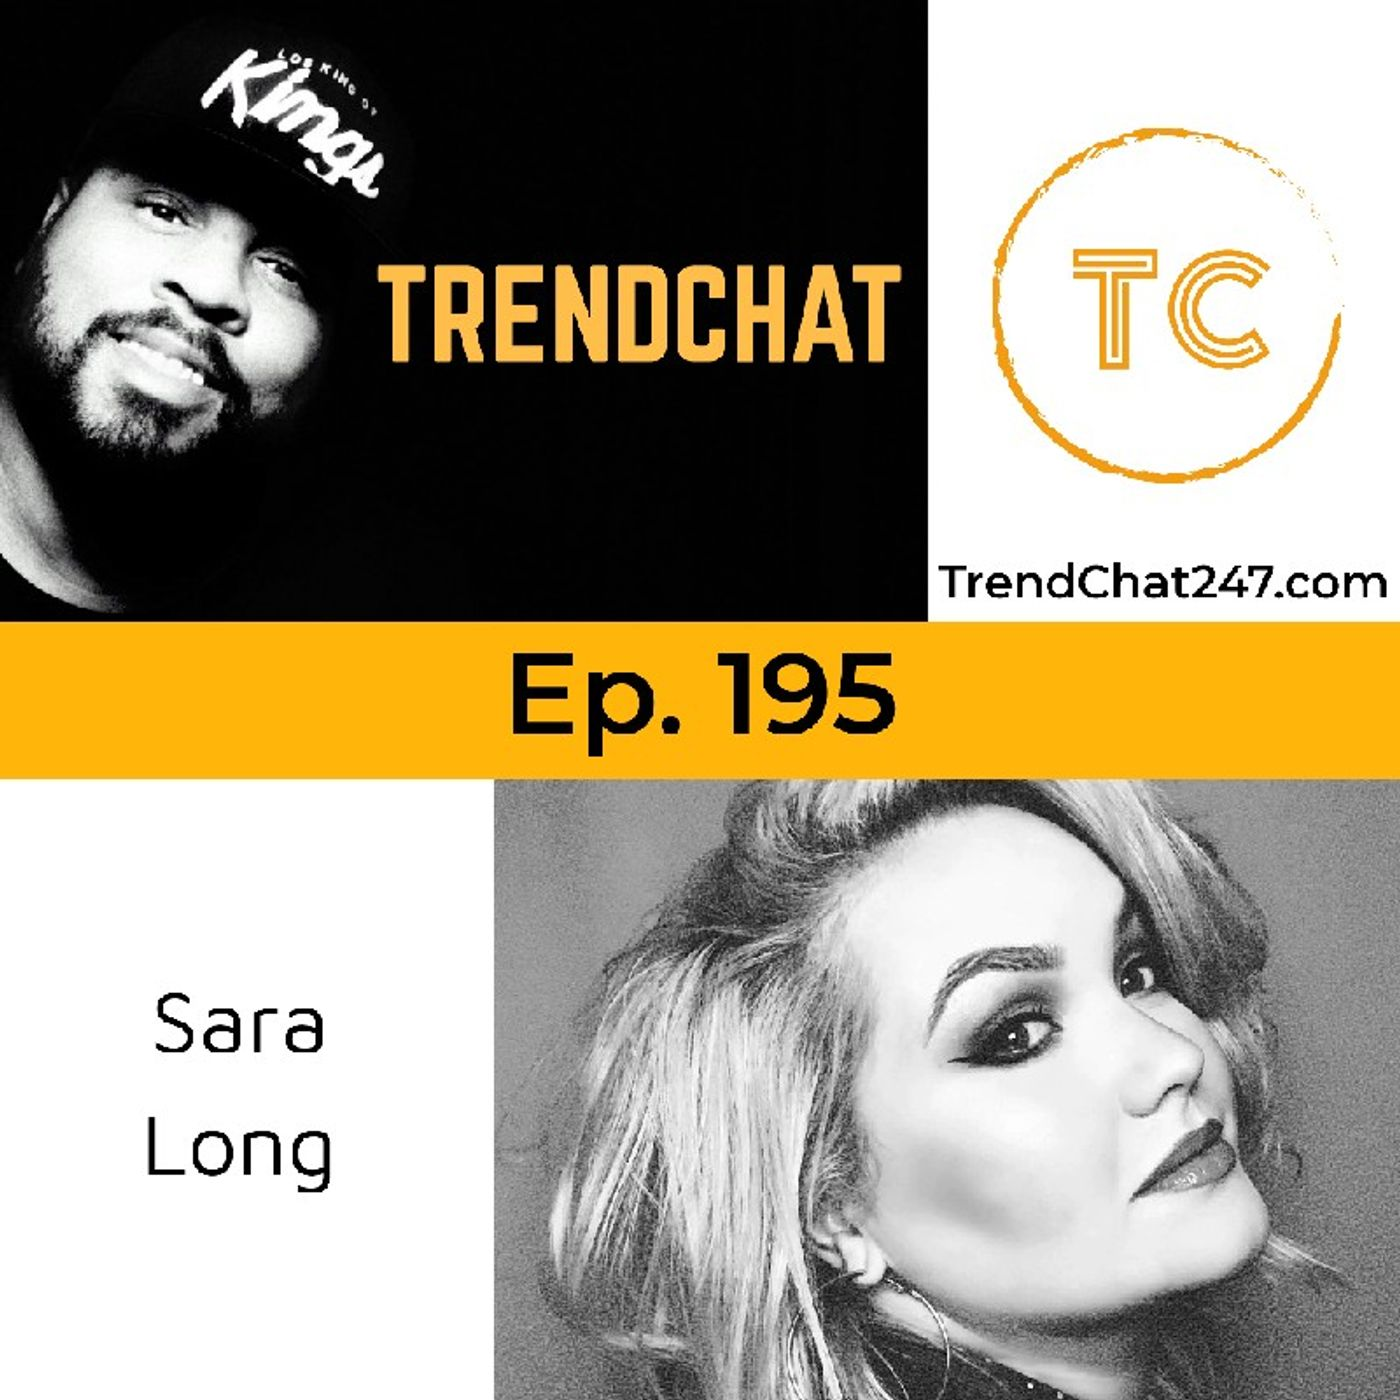 Ep. 195 - History Has It's Eyes On You with Sara Long